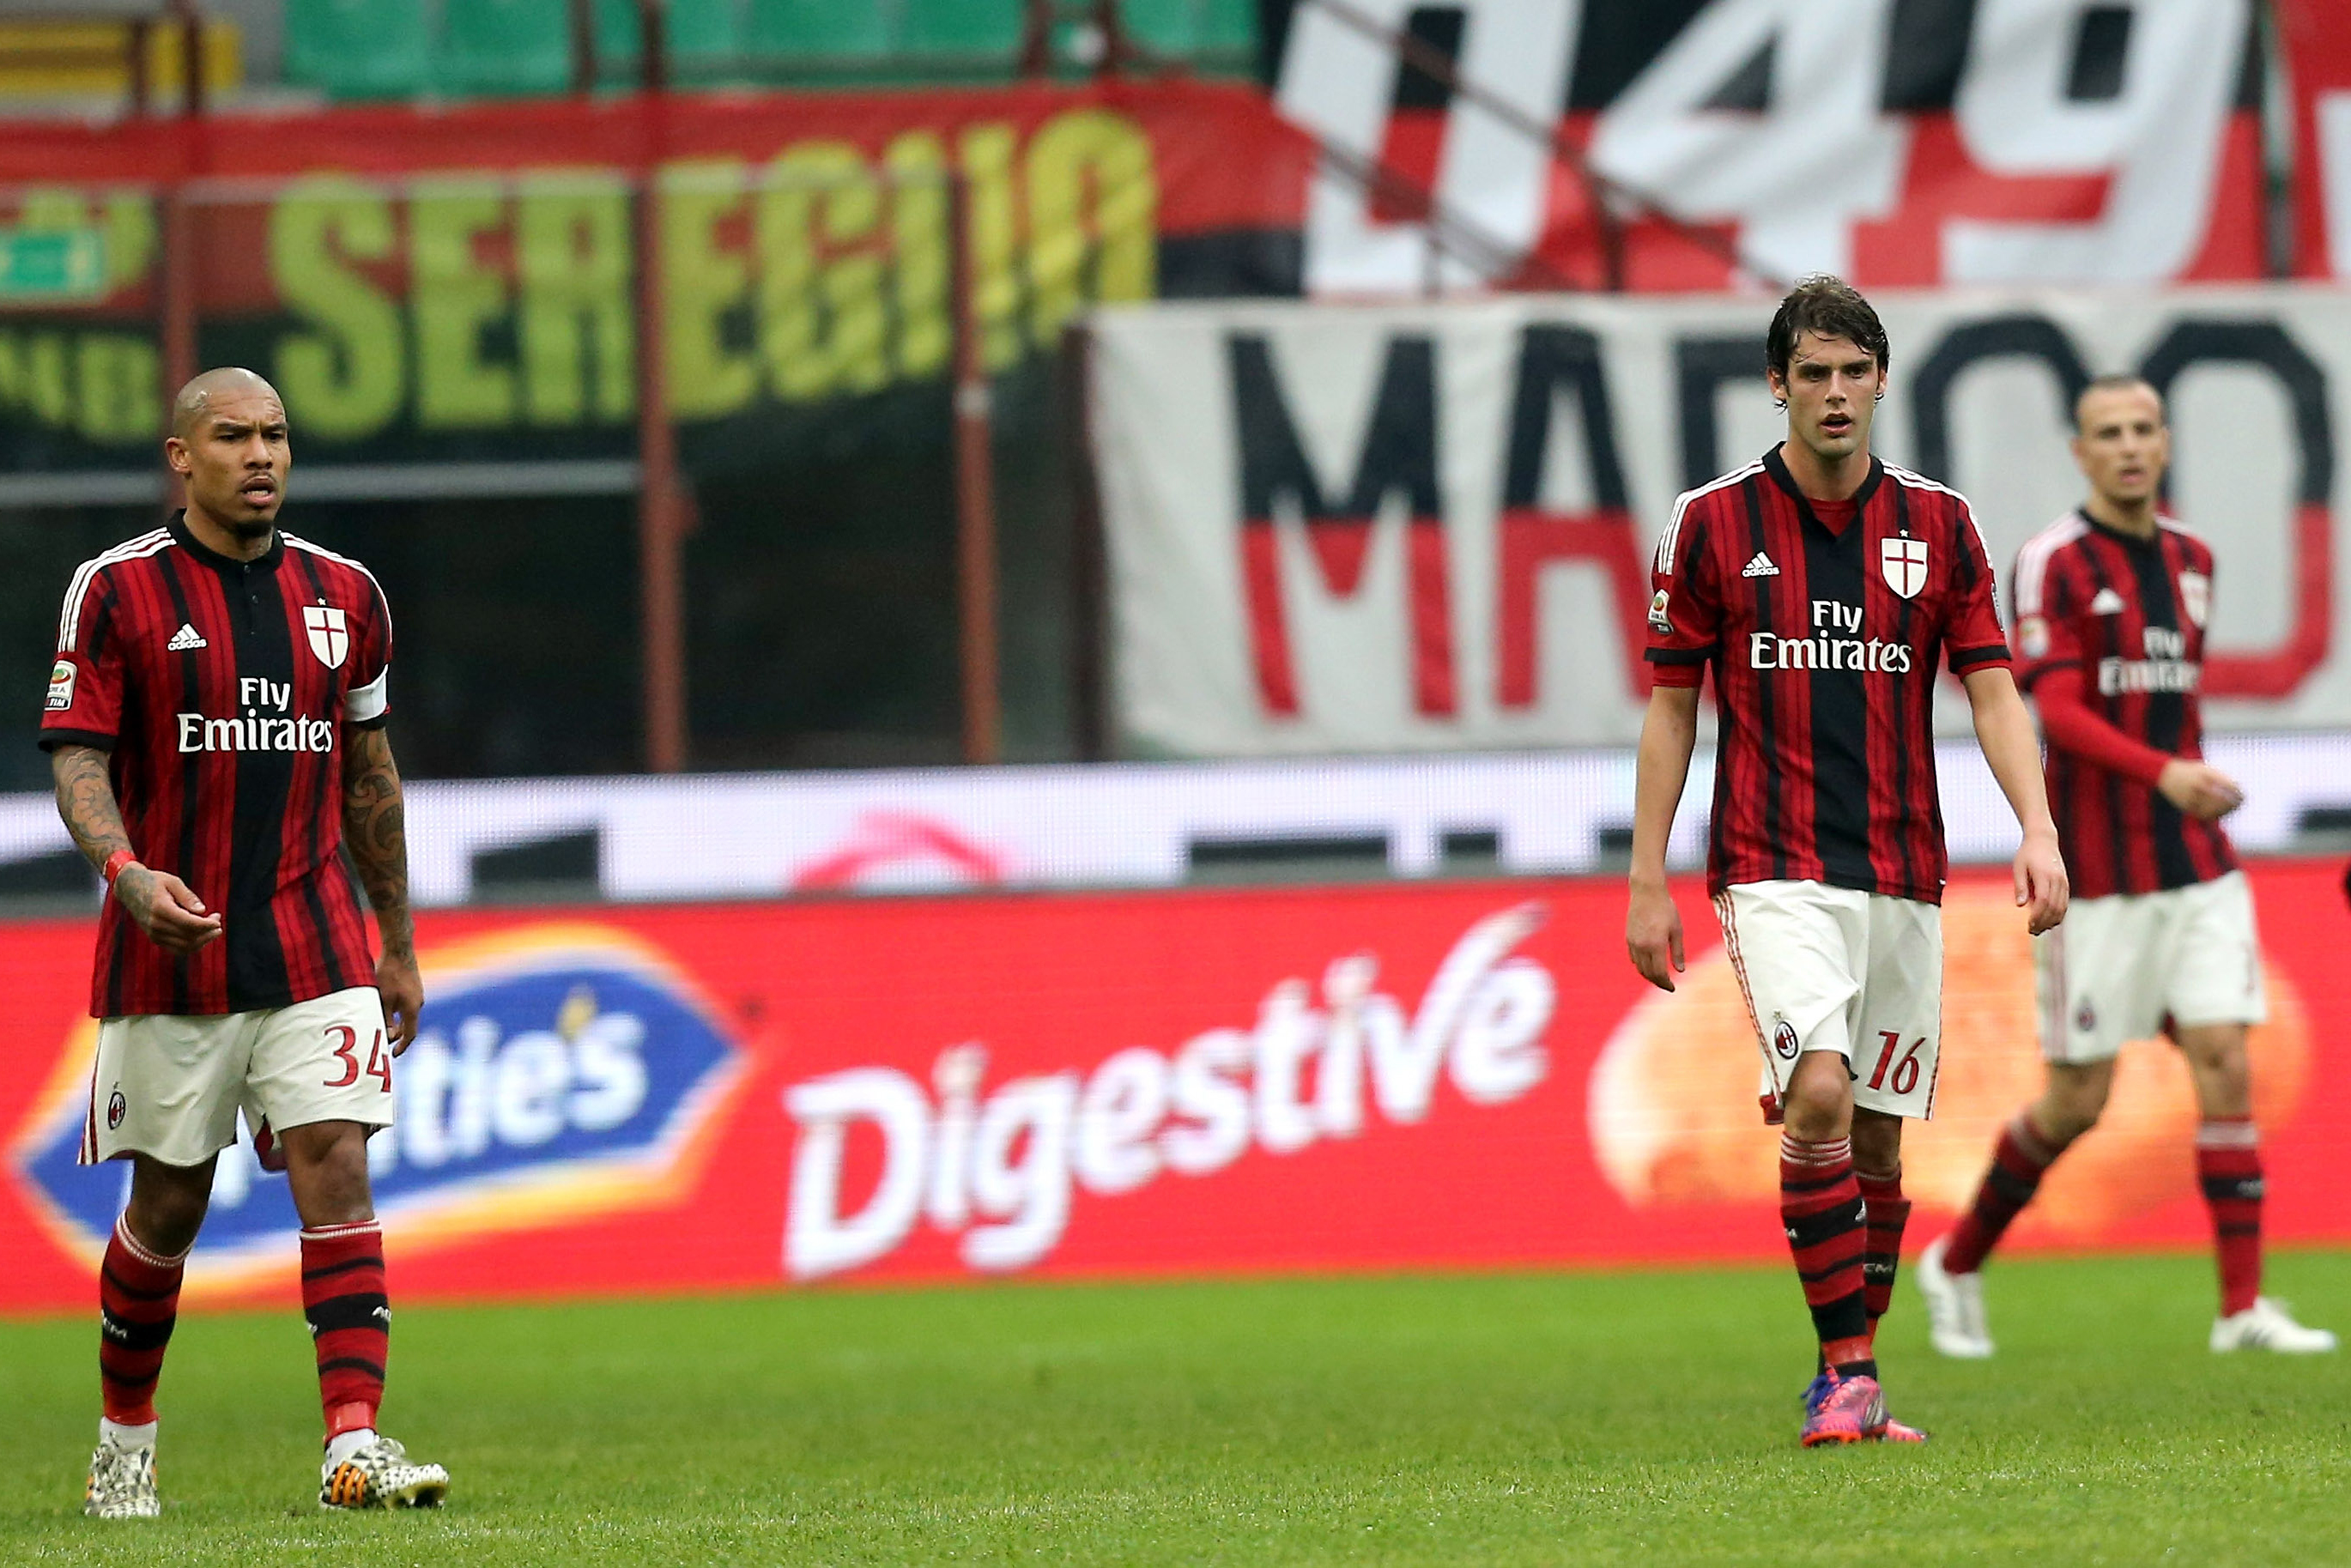 AC Milan Are the Architects of Their Own Downfall in Empoli Draw   Bleacher Report   Latest News, Videos and Highlights